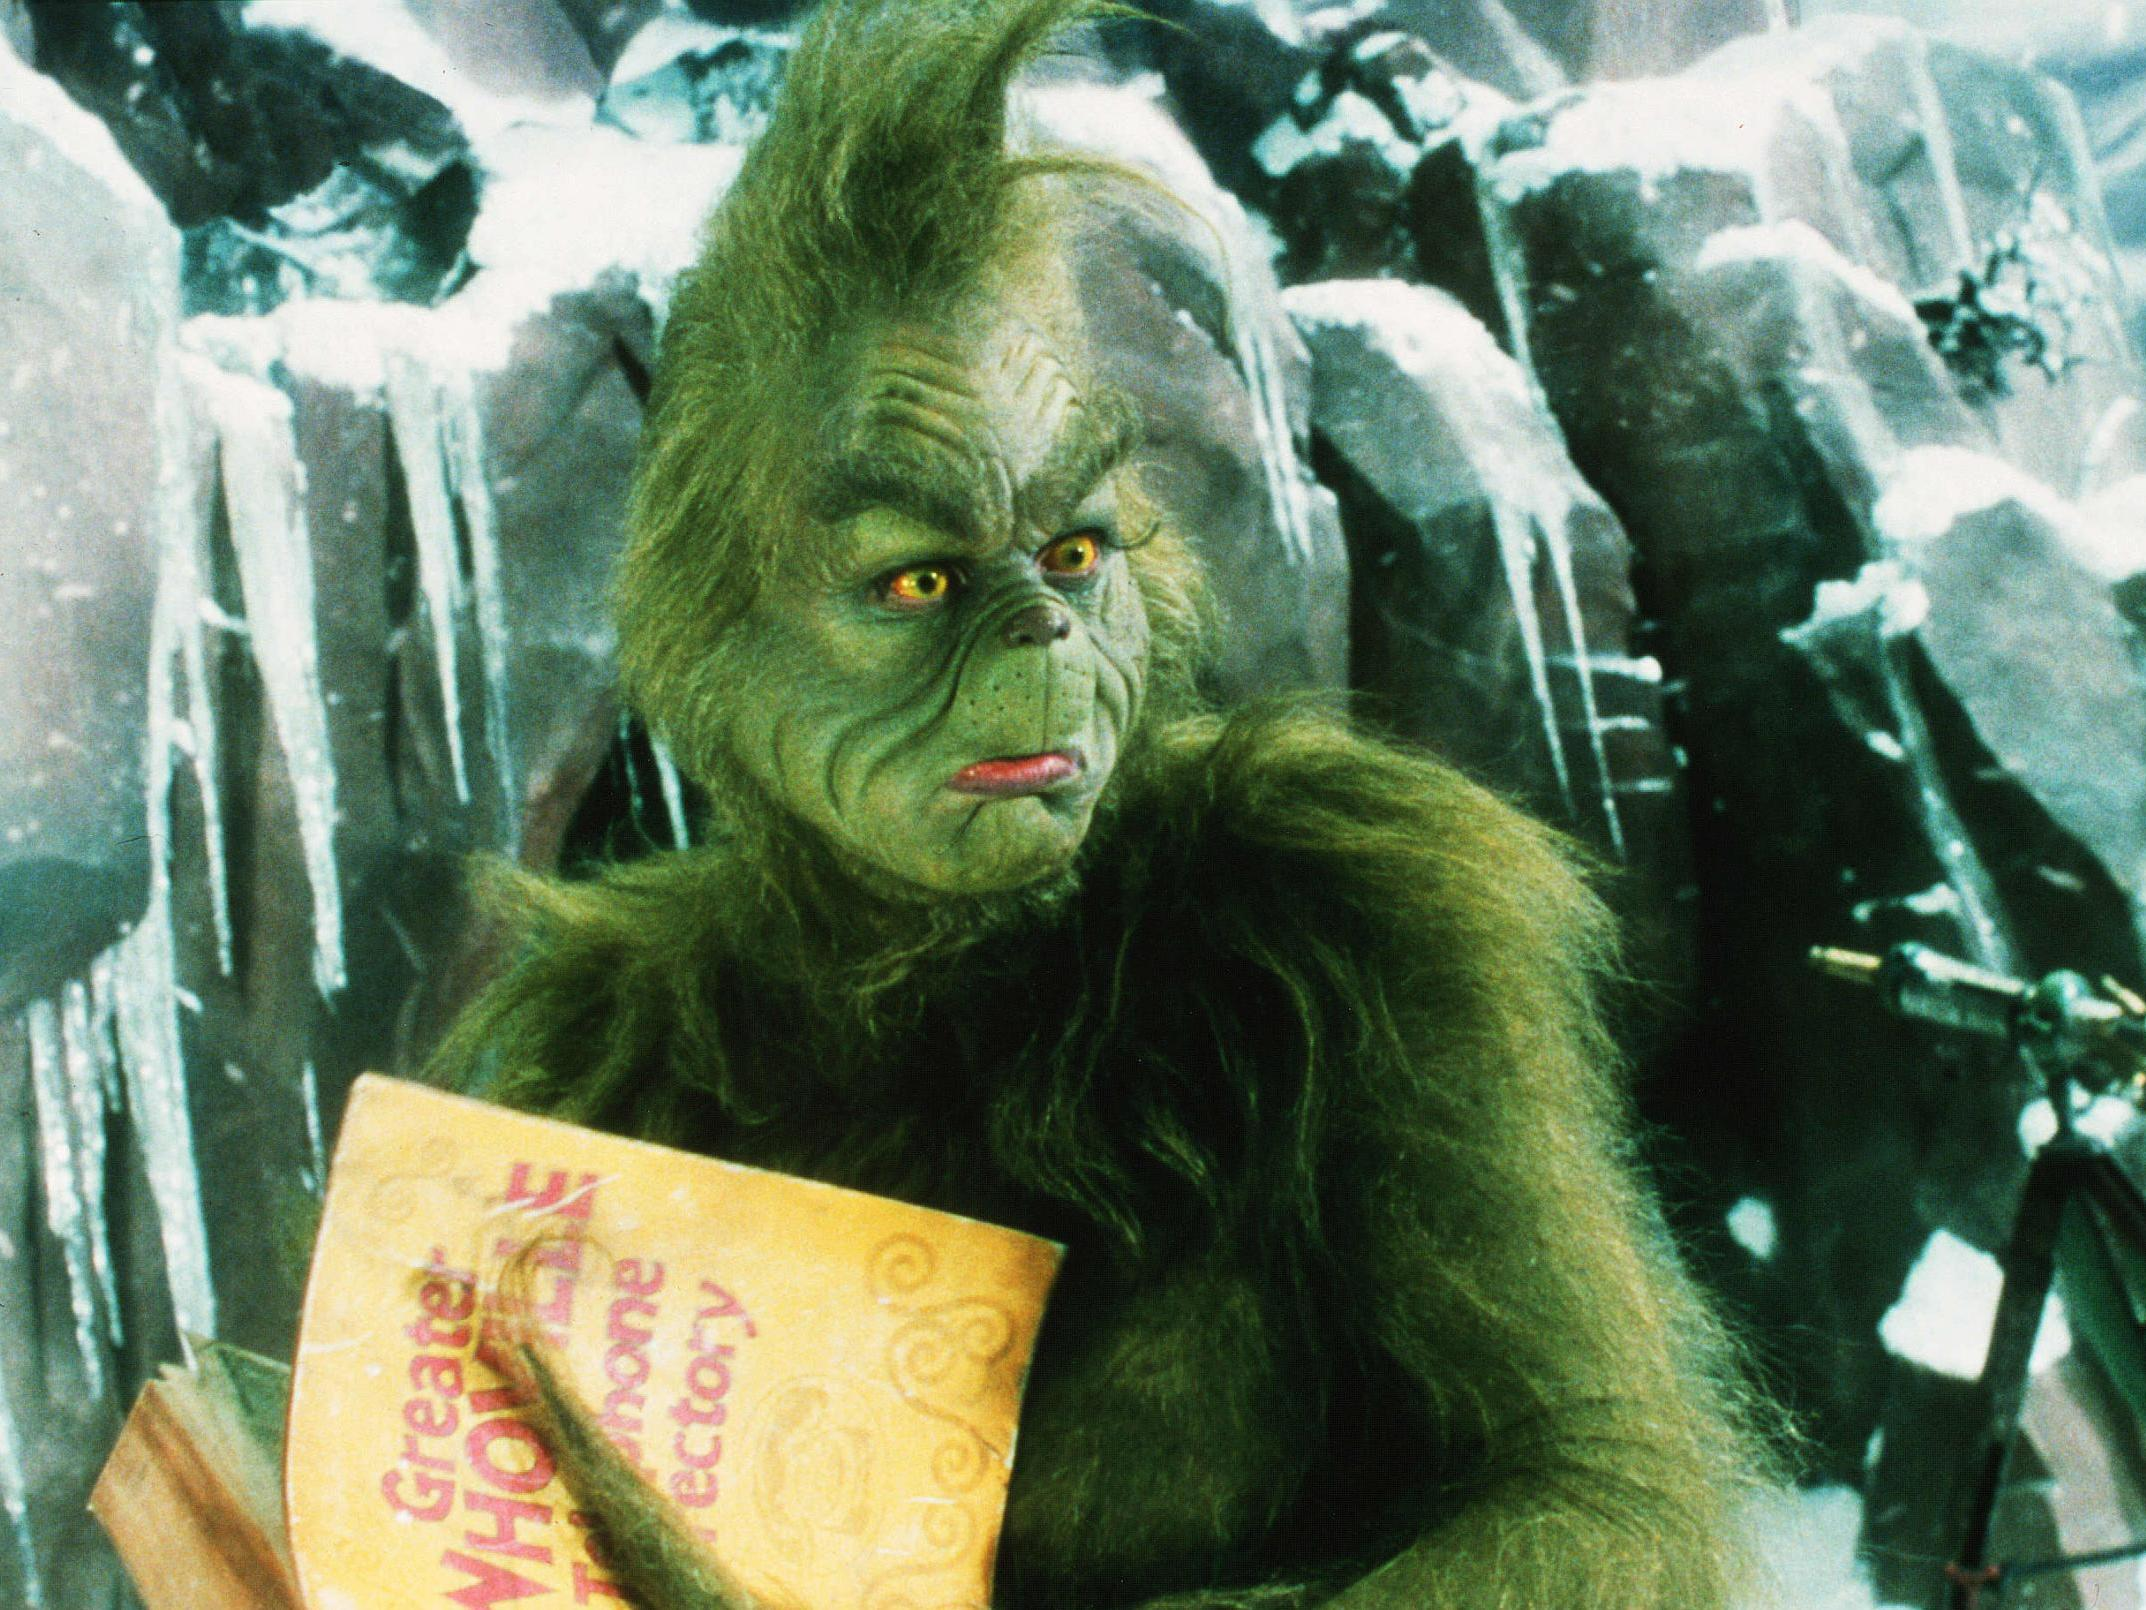 The Grinch: Netflix sparks controversy after removing Jim Carrey film from UK streaming on 1 December